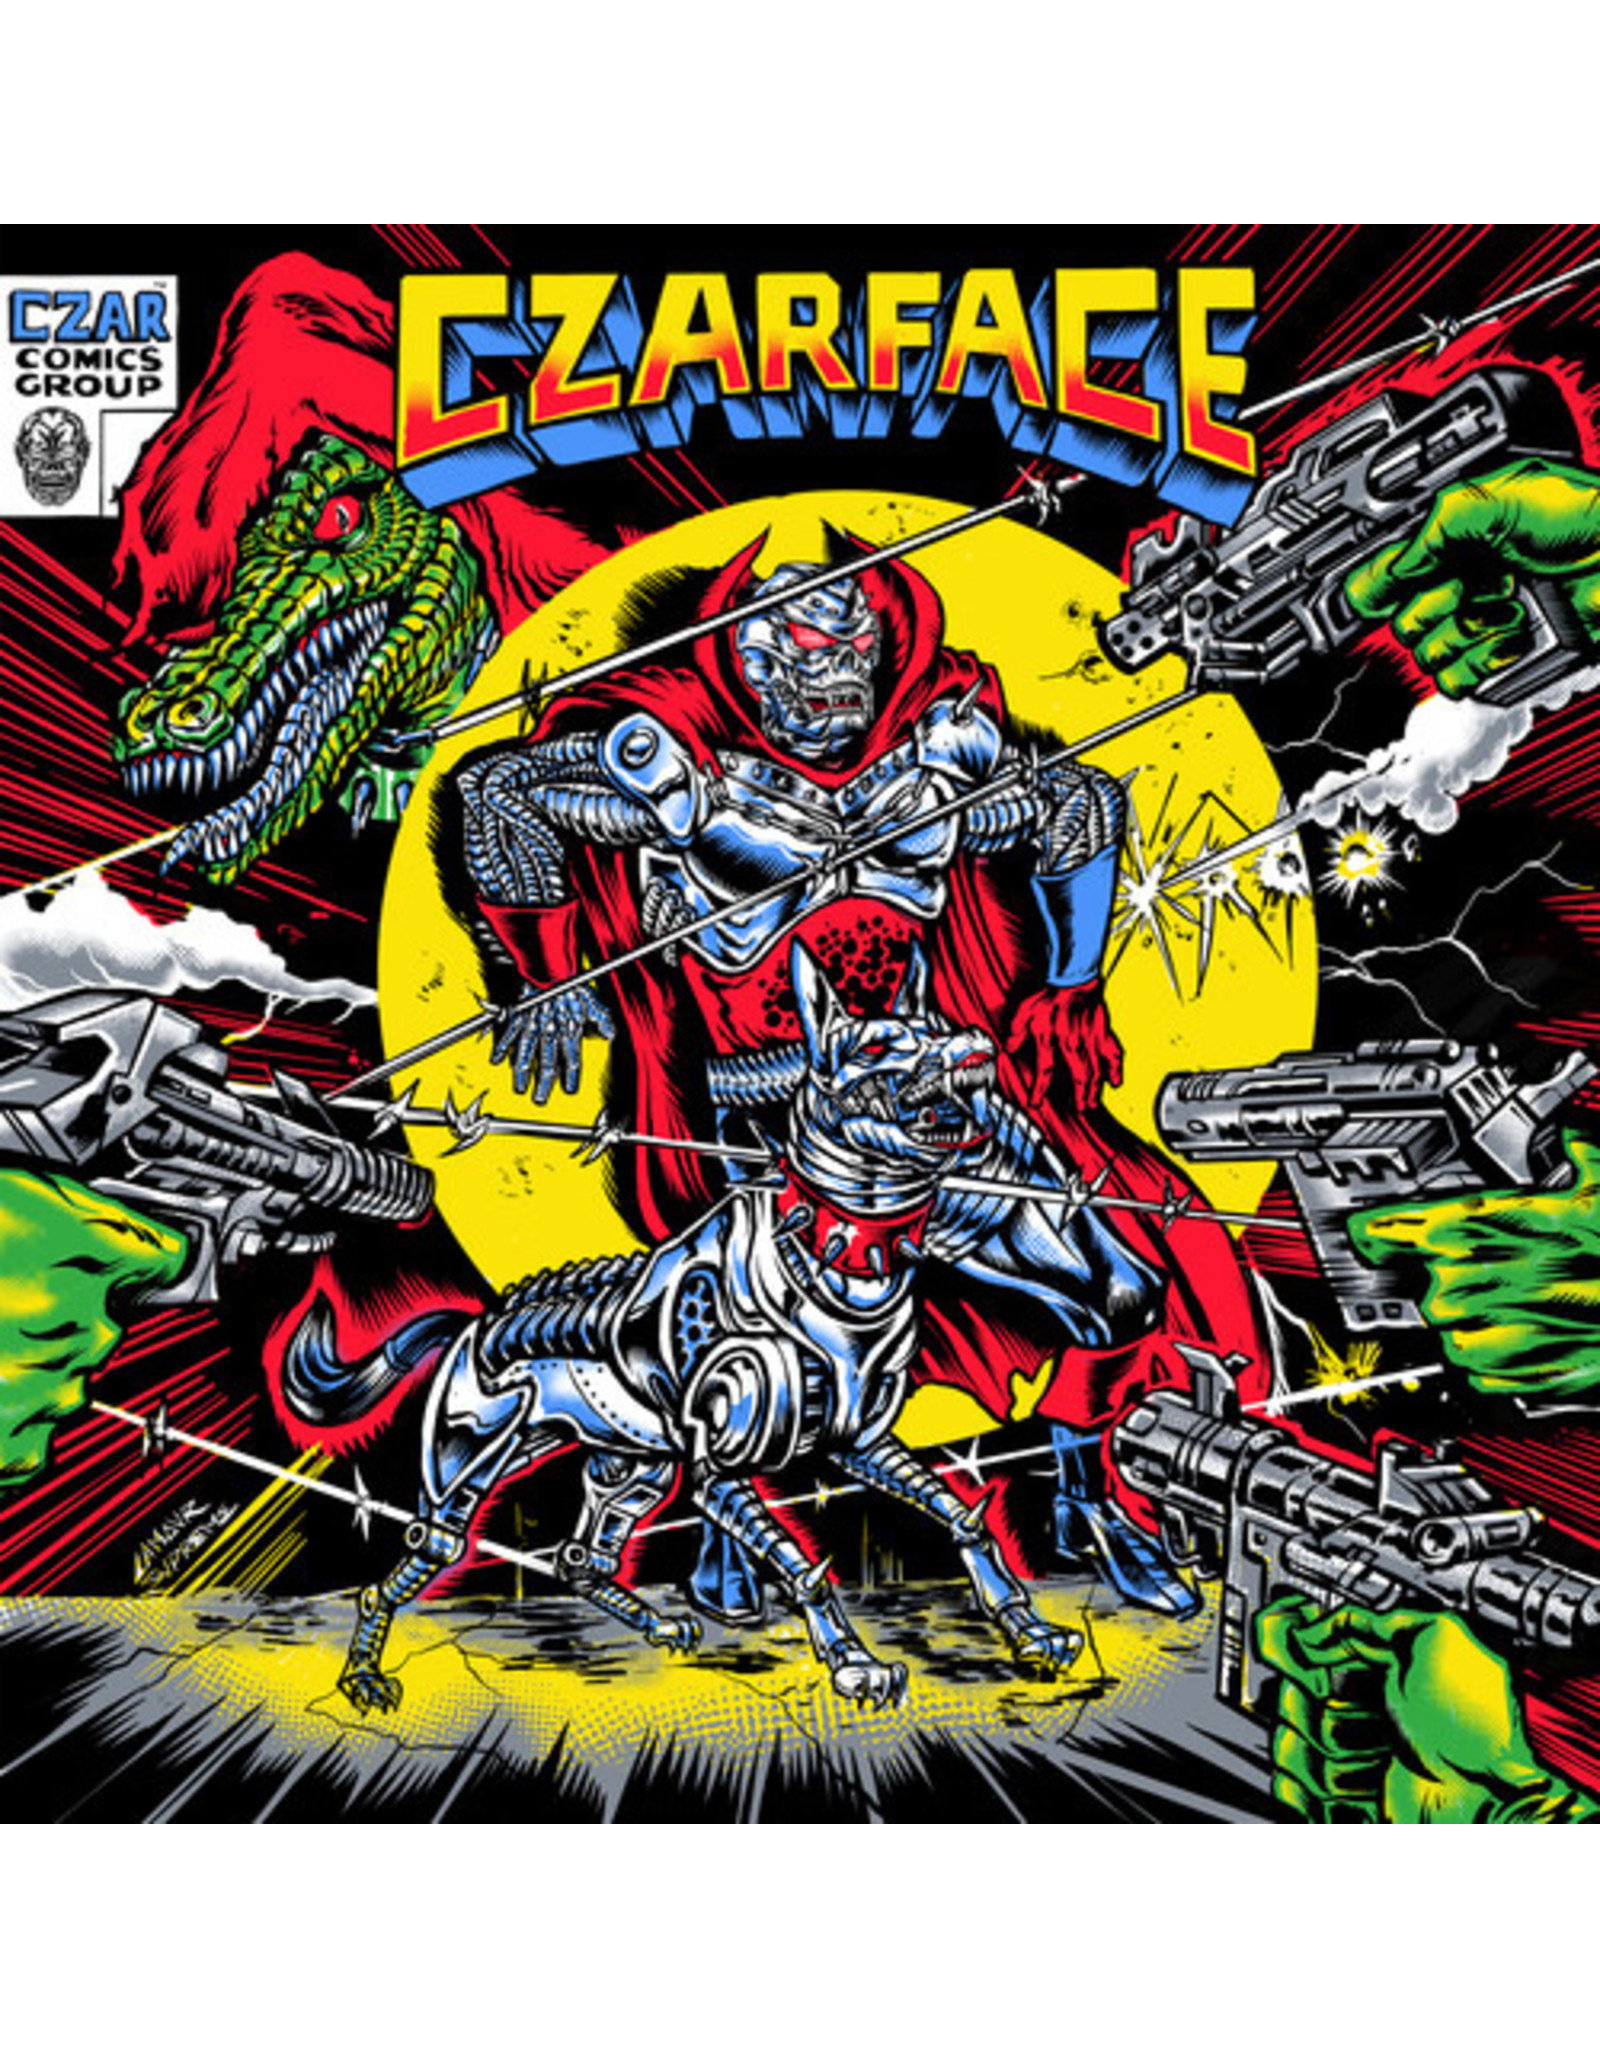 New Vinyl Czarface - The Odd Czar Against Us LP